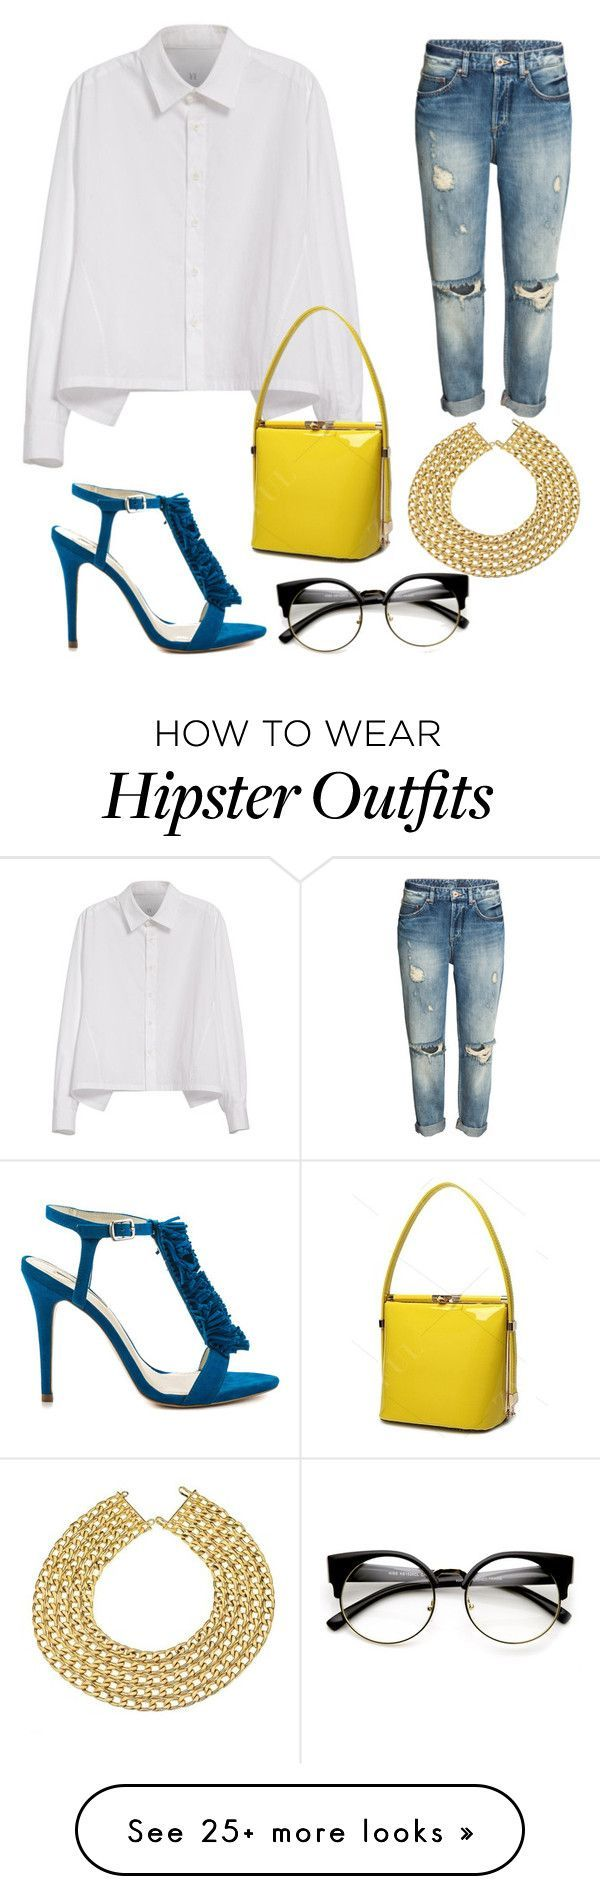 """Cute Hipster Outfits : """"work look"""" by julia-chobonova on Polyvore featuring BCBGeneration Y&"""